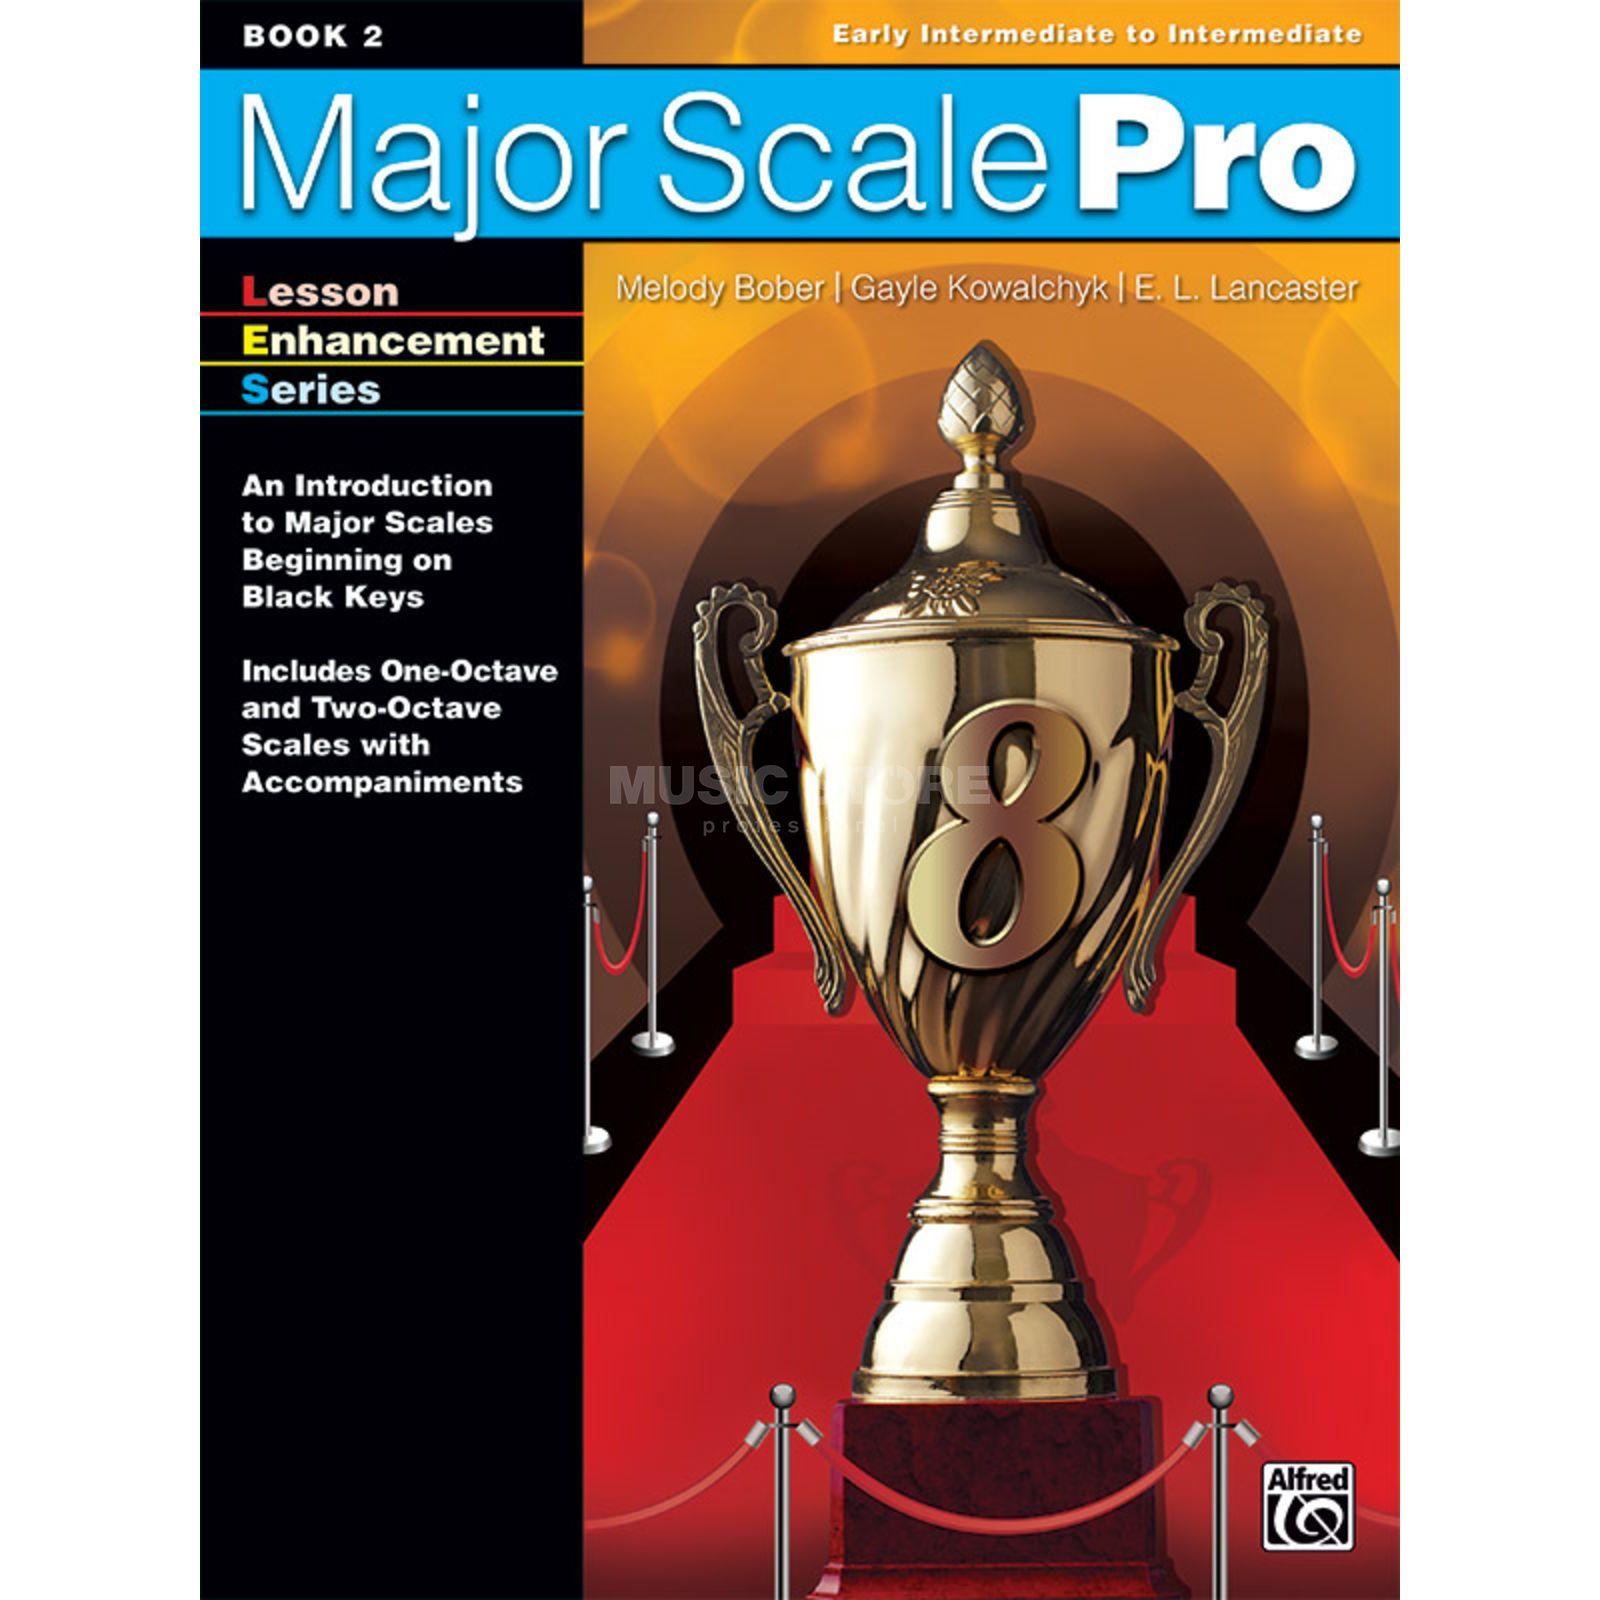 Alfred Music Major Scale Pro, Book 2 Produktbild